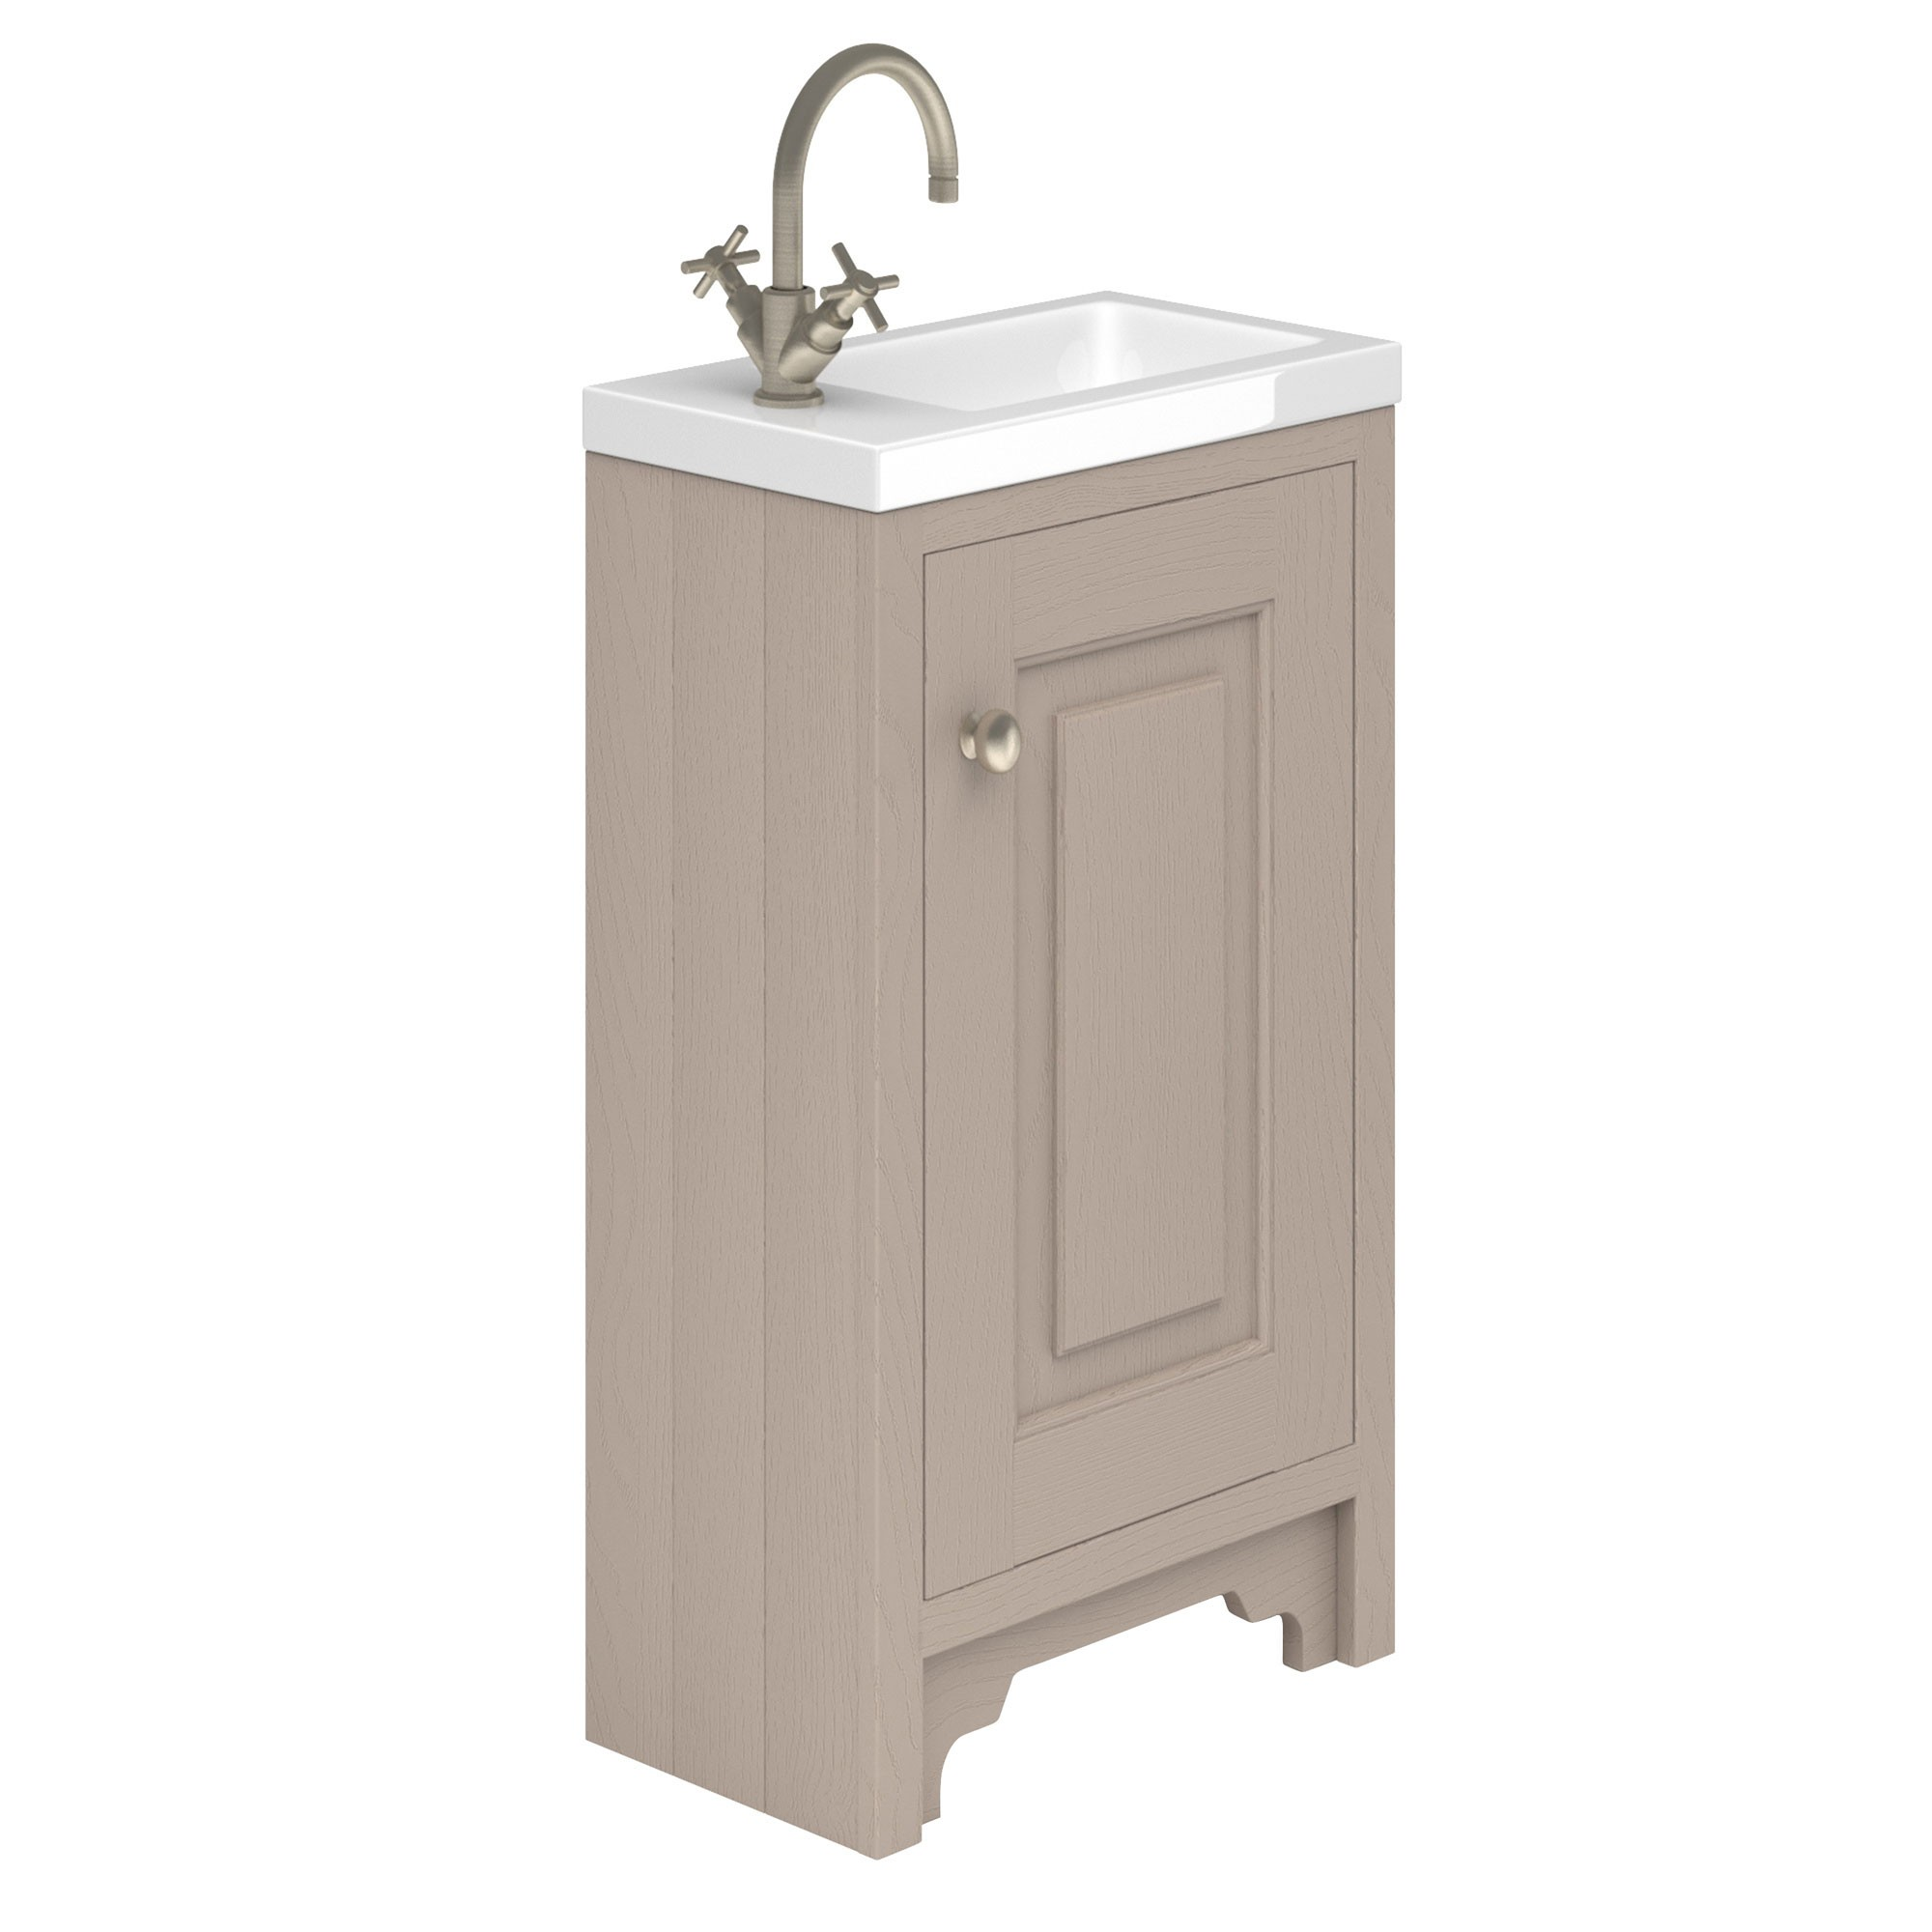 Best Off Slimline Cloakroom Oak Vanity Unit With Basin Bathroom Inspire  cloakroom vanity unit. Grab A Good Vanity Unit For Your Privy   darbylanefurniture com